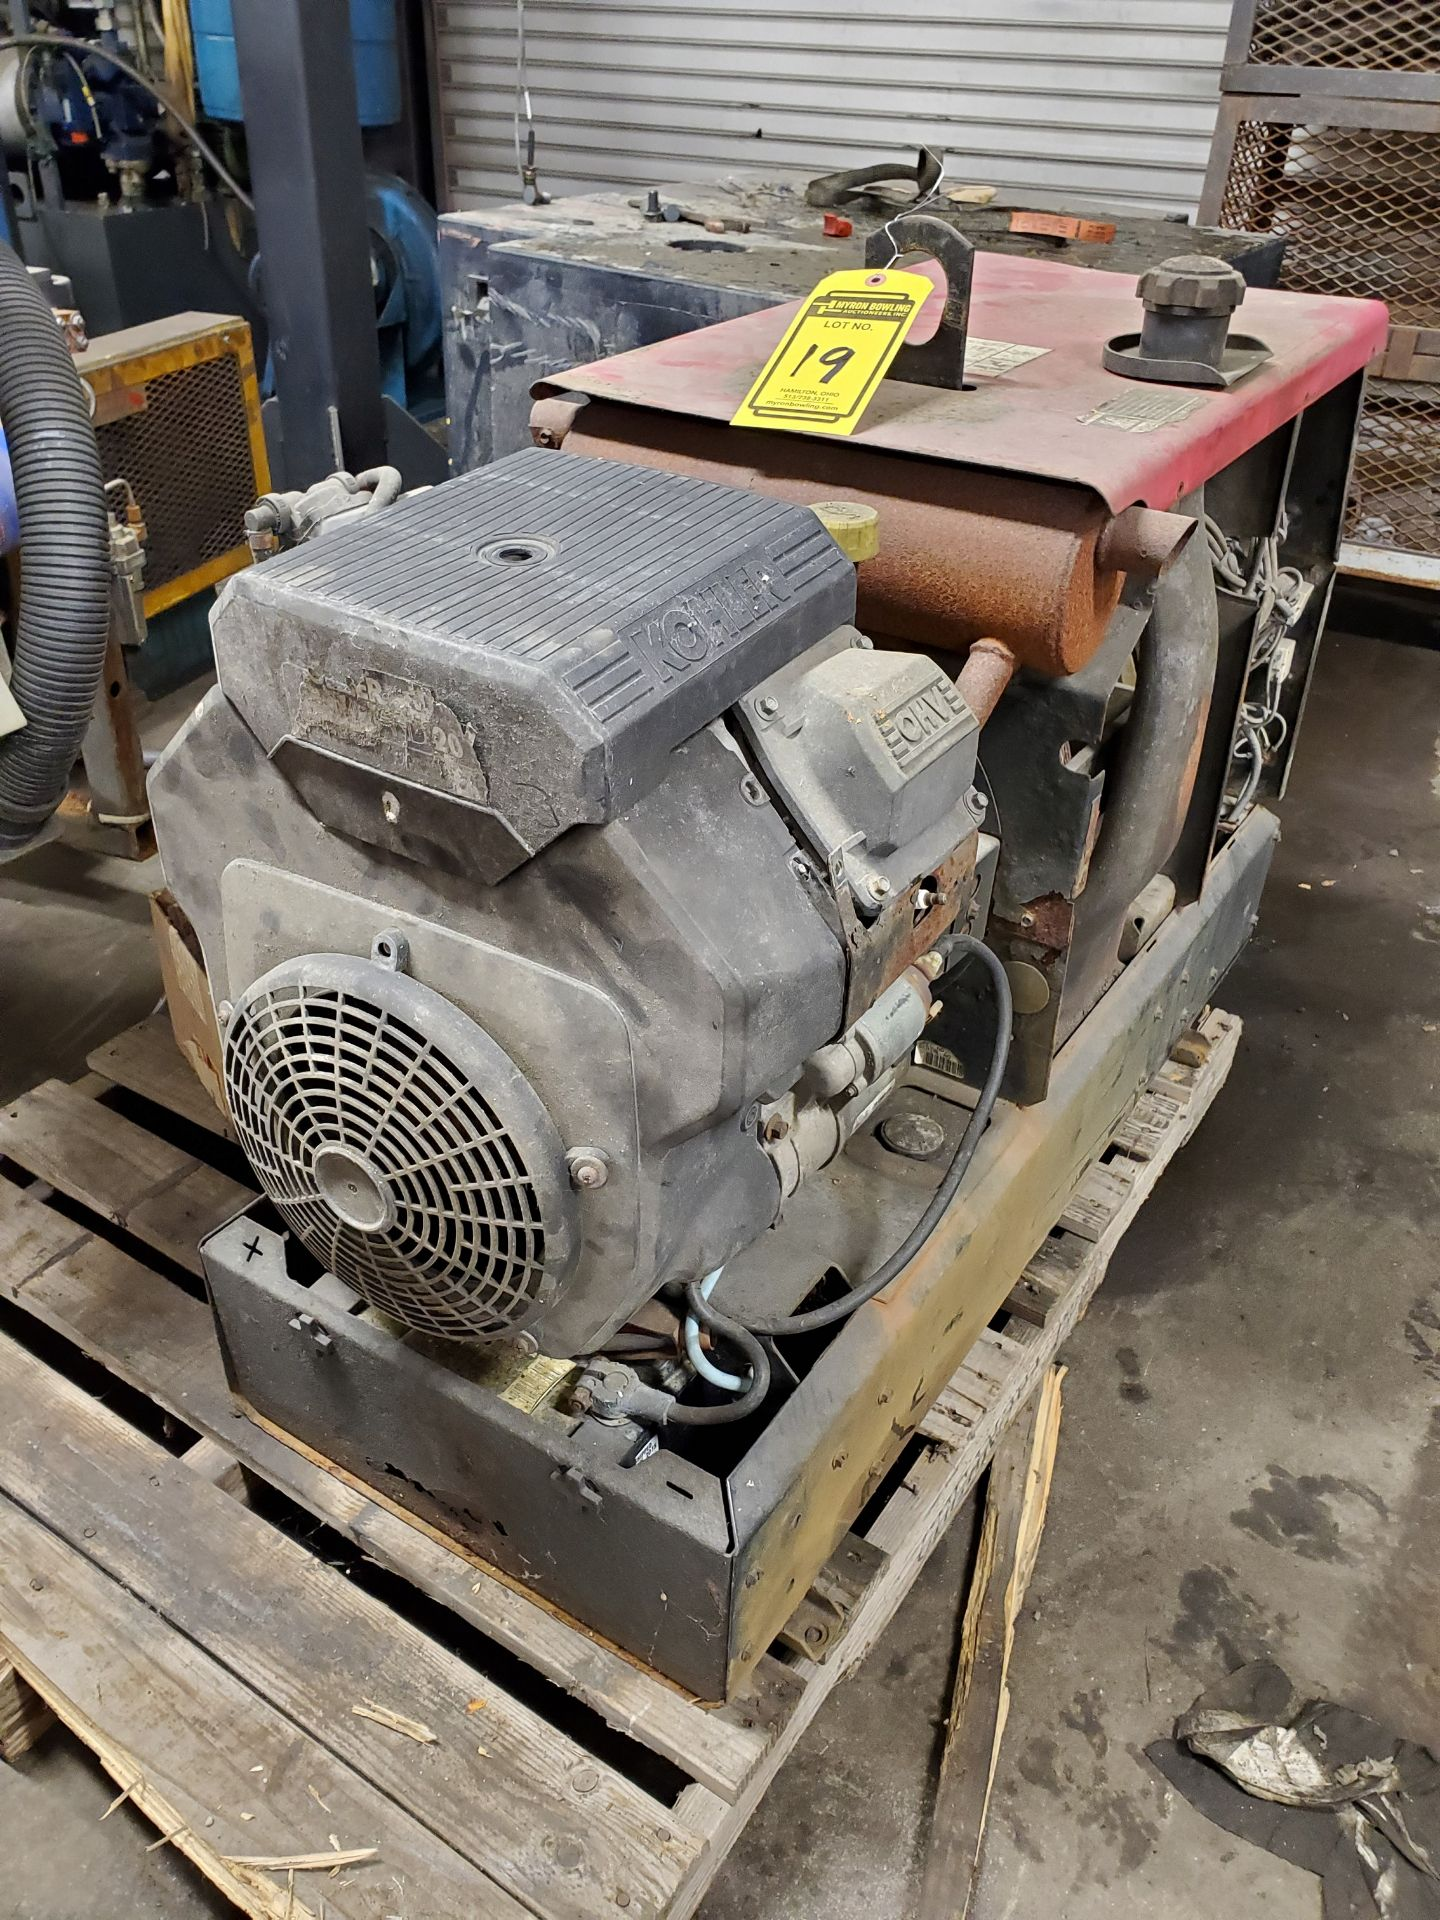 Lot 19 - LINCOLN ELECTRIC RANGER 10,000 GAS POWERED WELDER/GENERATOR, (4) 120 V., (1) 120/240 V. OUTLETS, 991